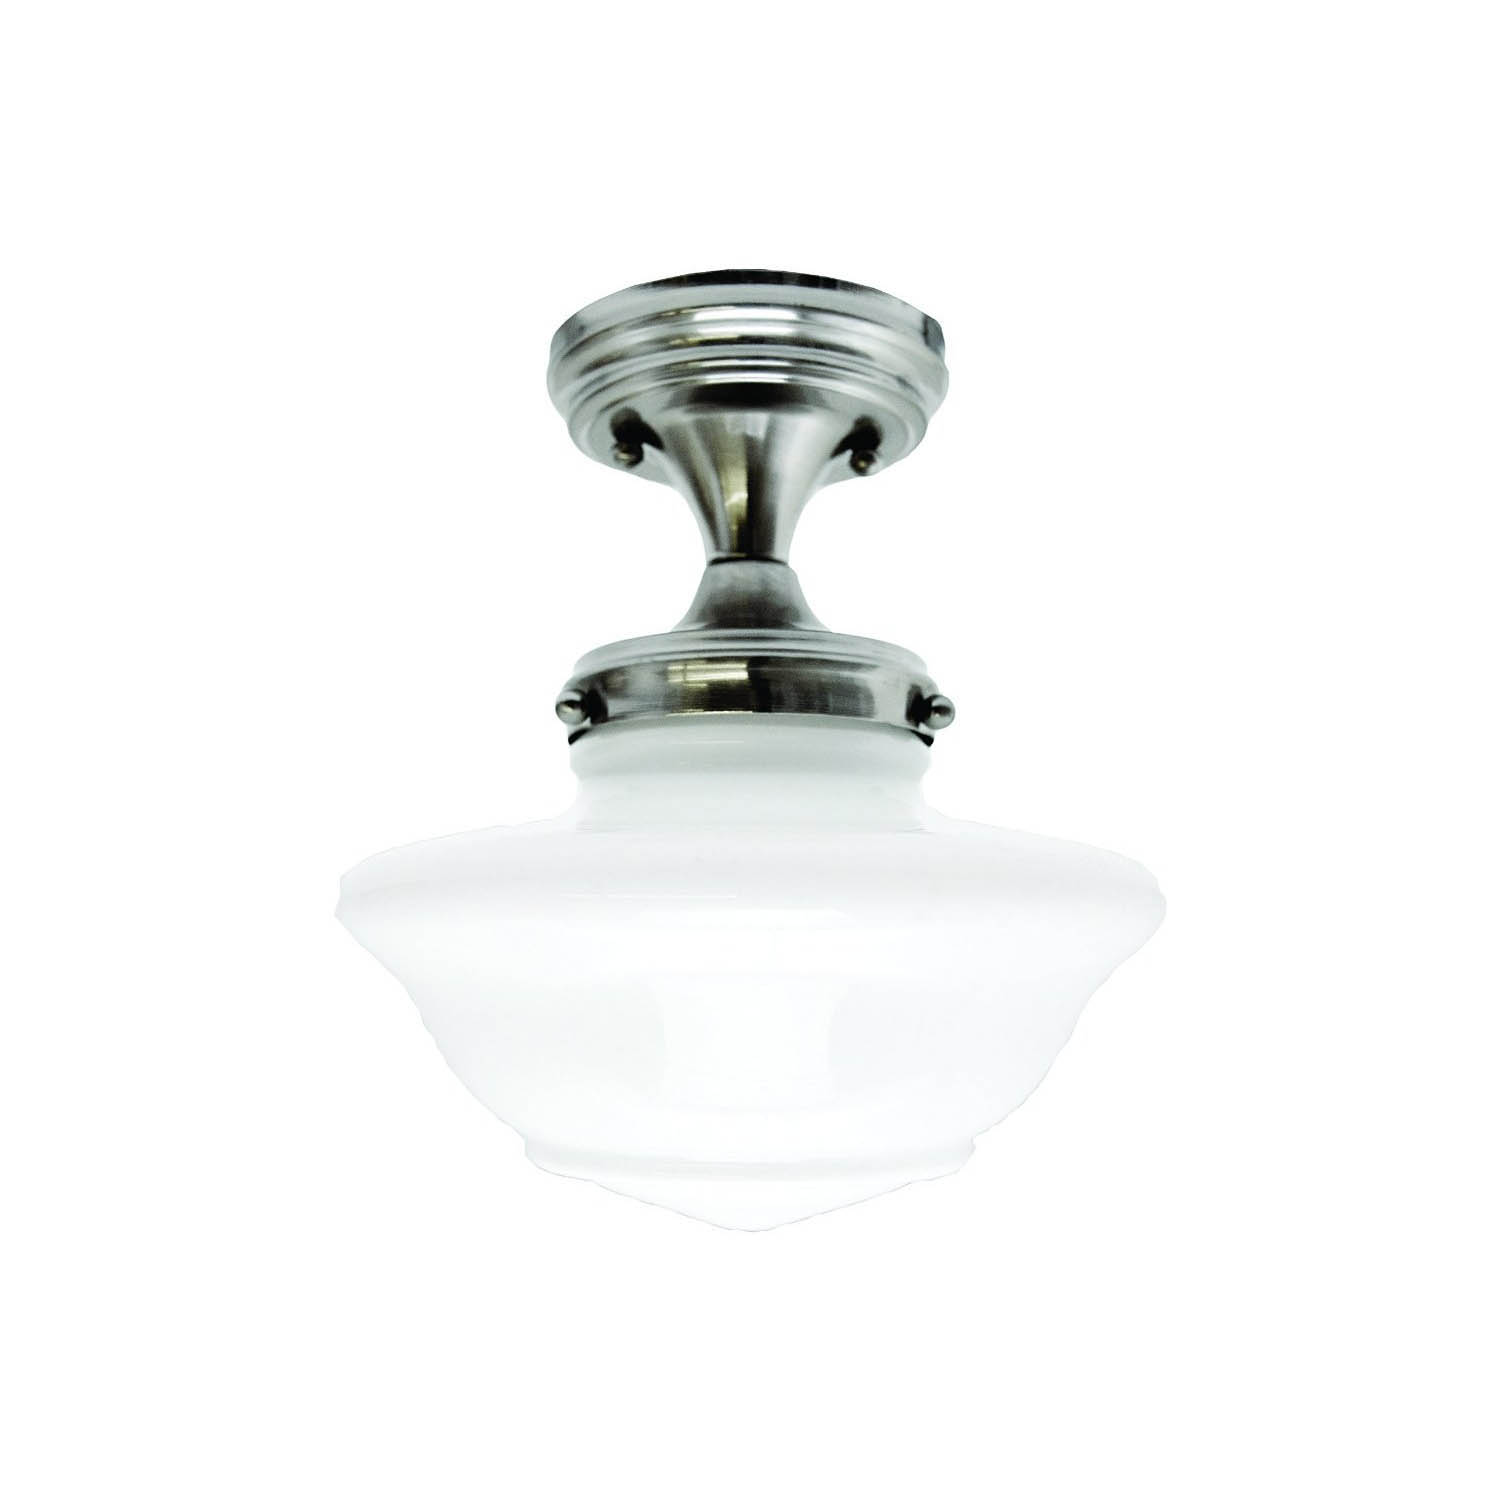 Design House Schoolhouse Ceiling Mount in Satin Nickel - 577494